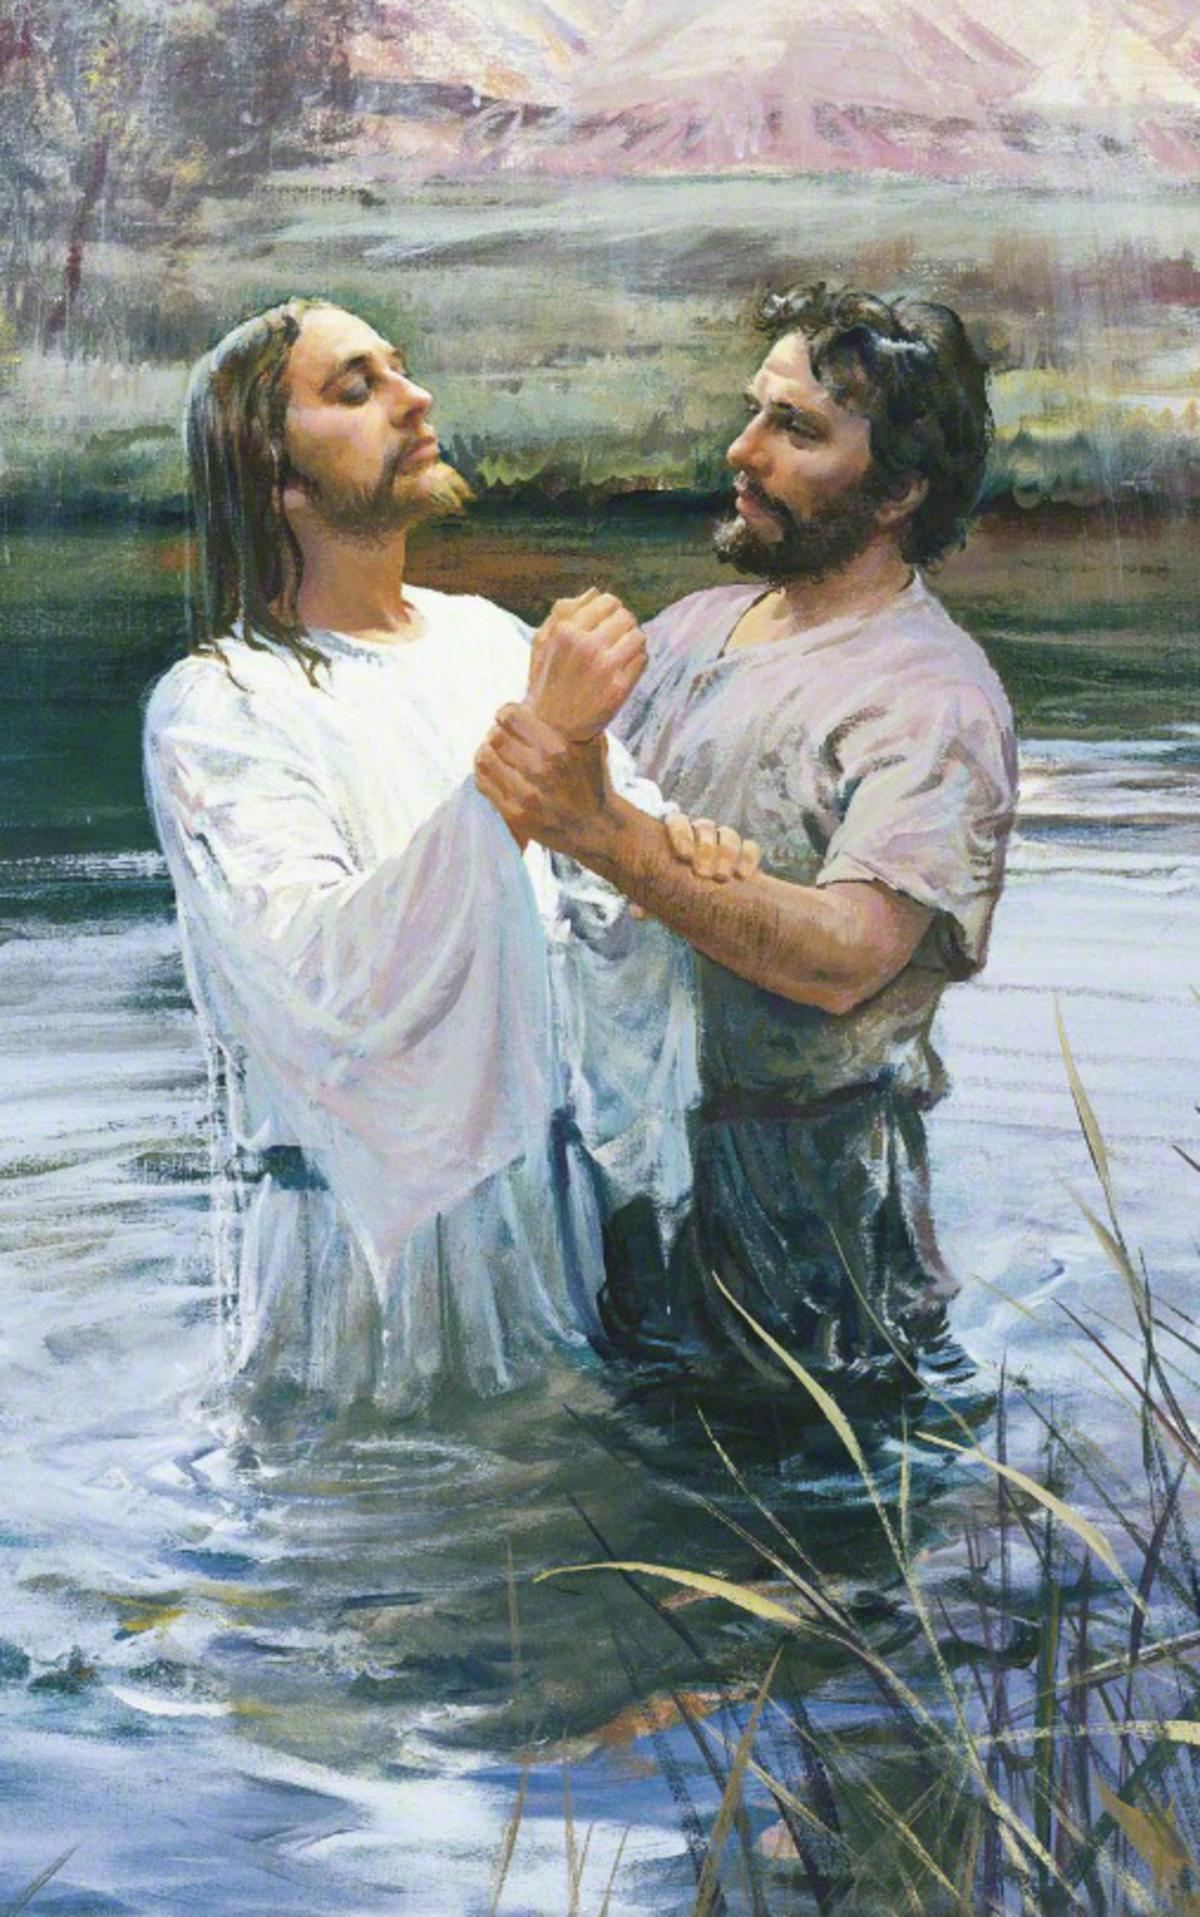 Jesus Christ was baptized over 2,000 years ago, but baptism is just as relevant to people alive today.